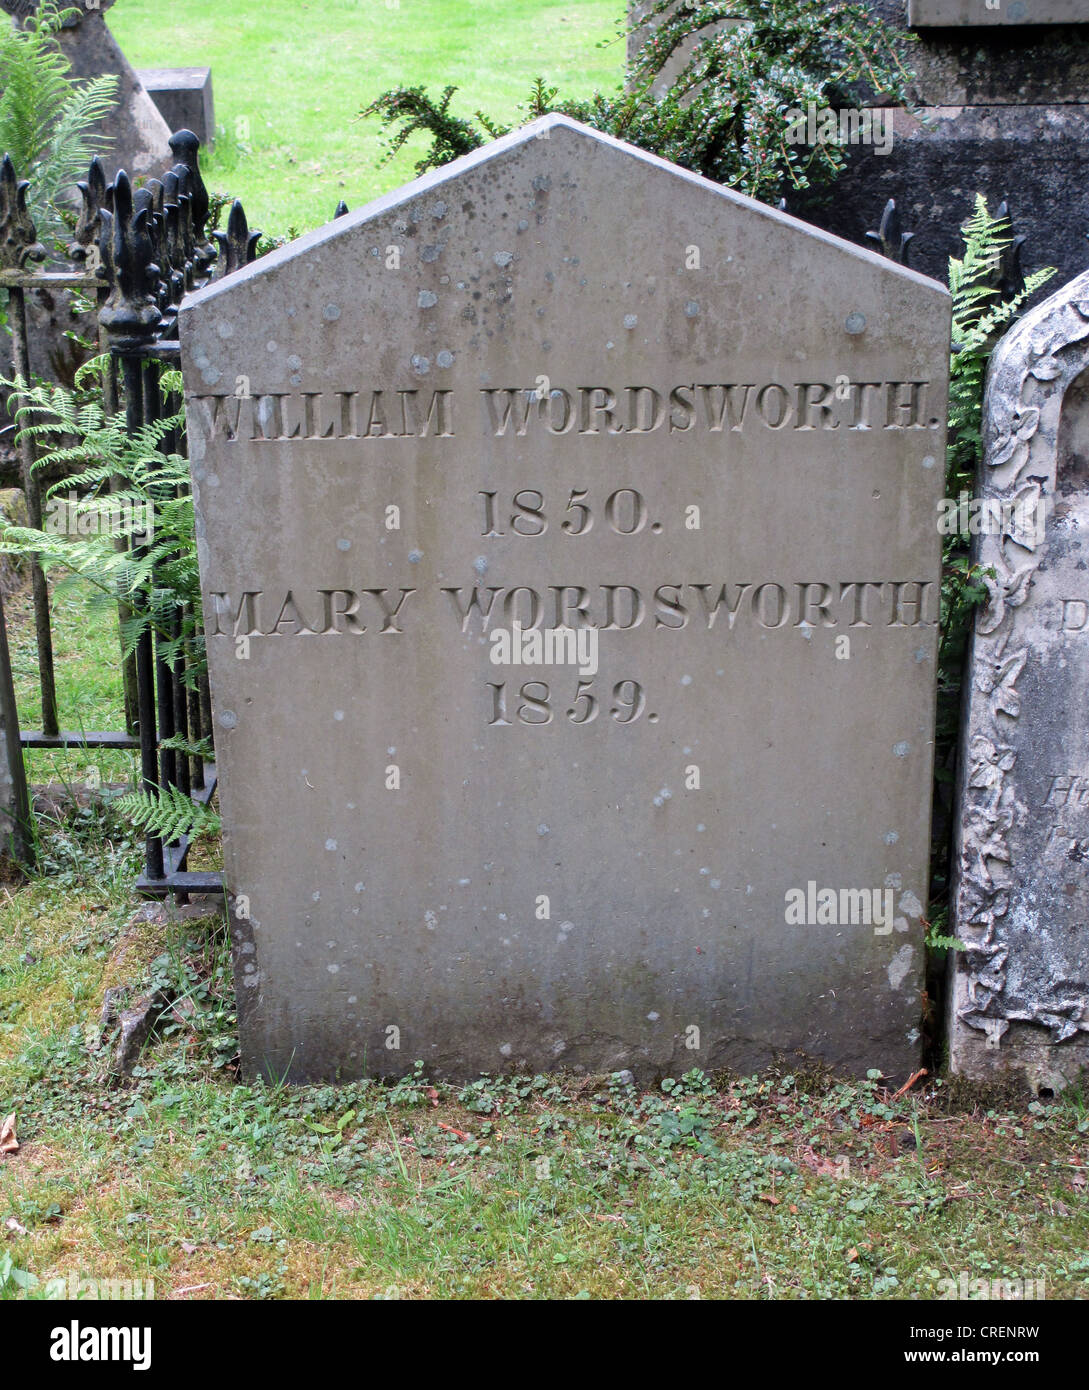 WILLIAM WORDSWORTH (1770-1850)  Gravestone of  Wordsworth and wife at St. Oswald's Church, Grasmere, Cumbria. - Stock Image